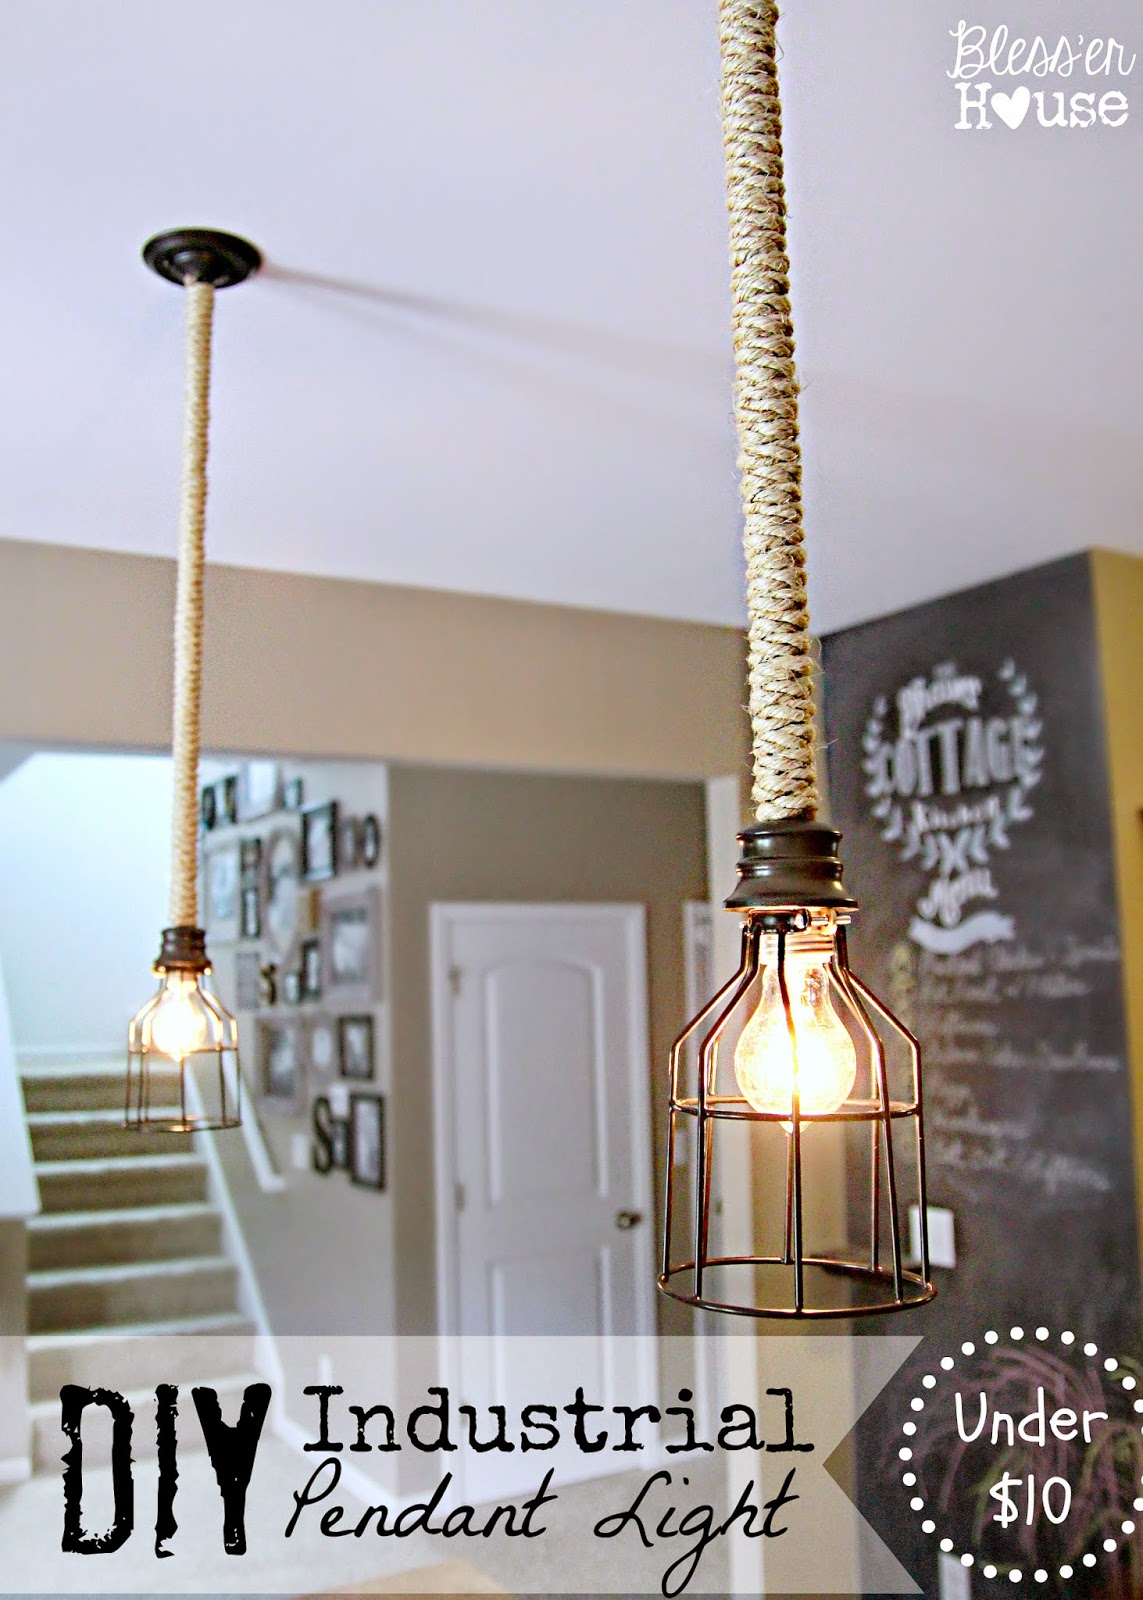 DIY Industrial Pendant Light: Blessu0027er House